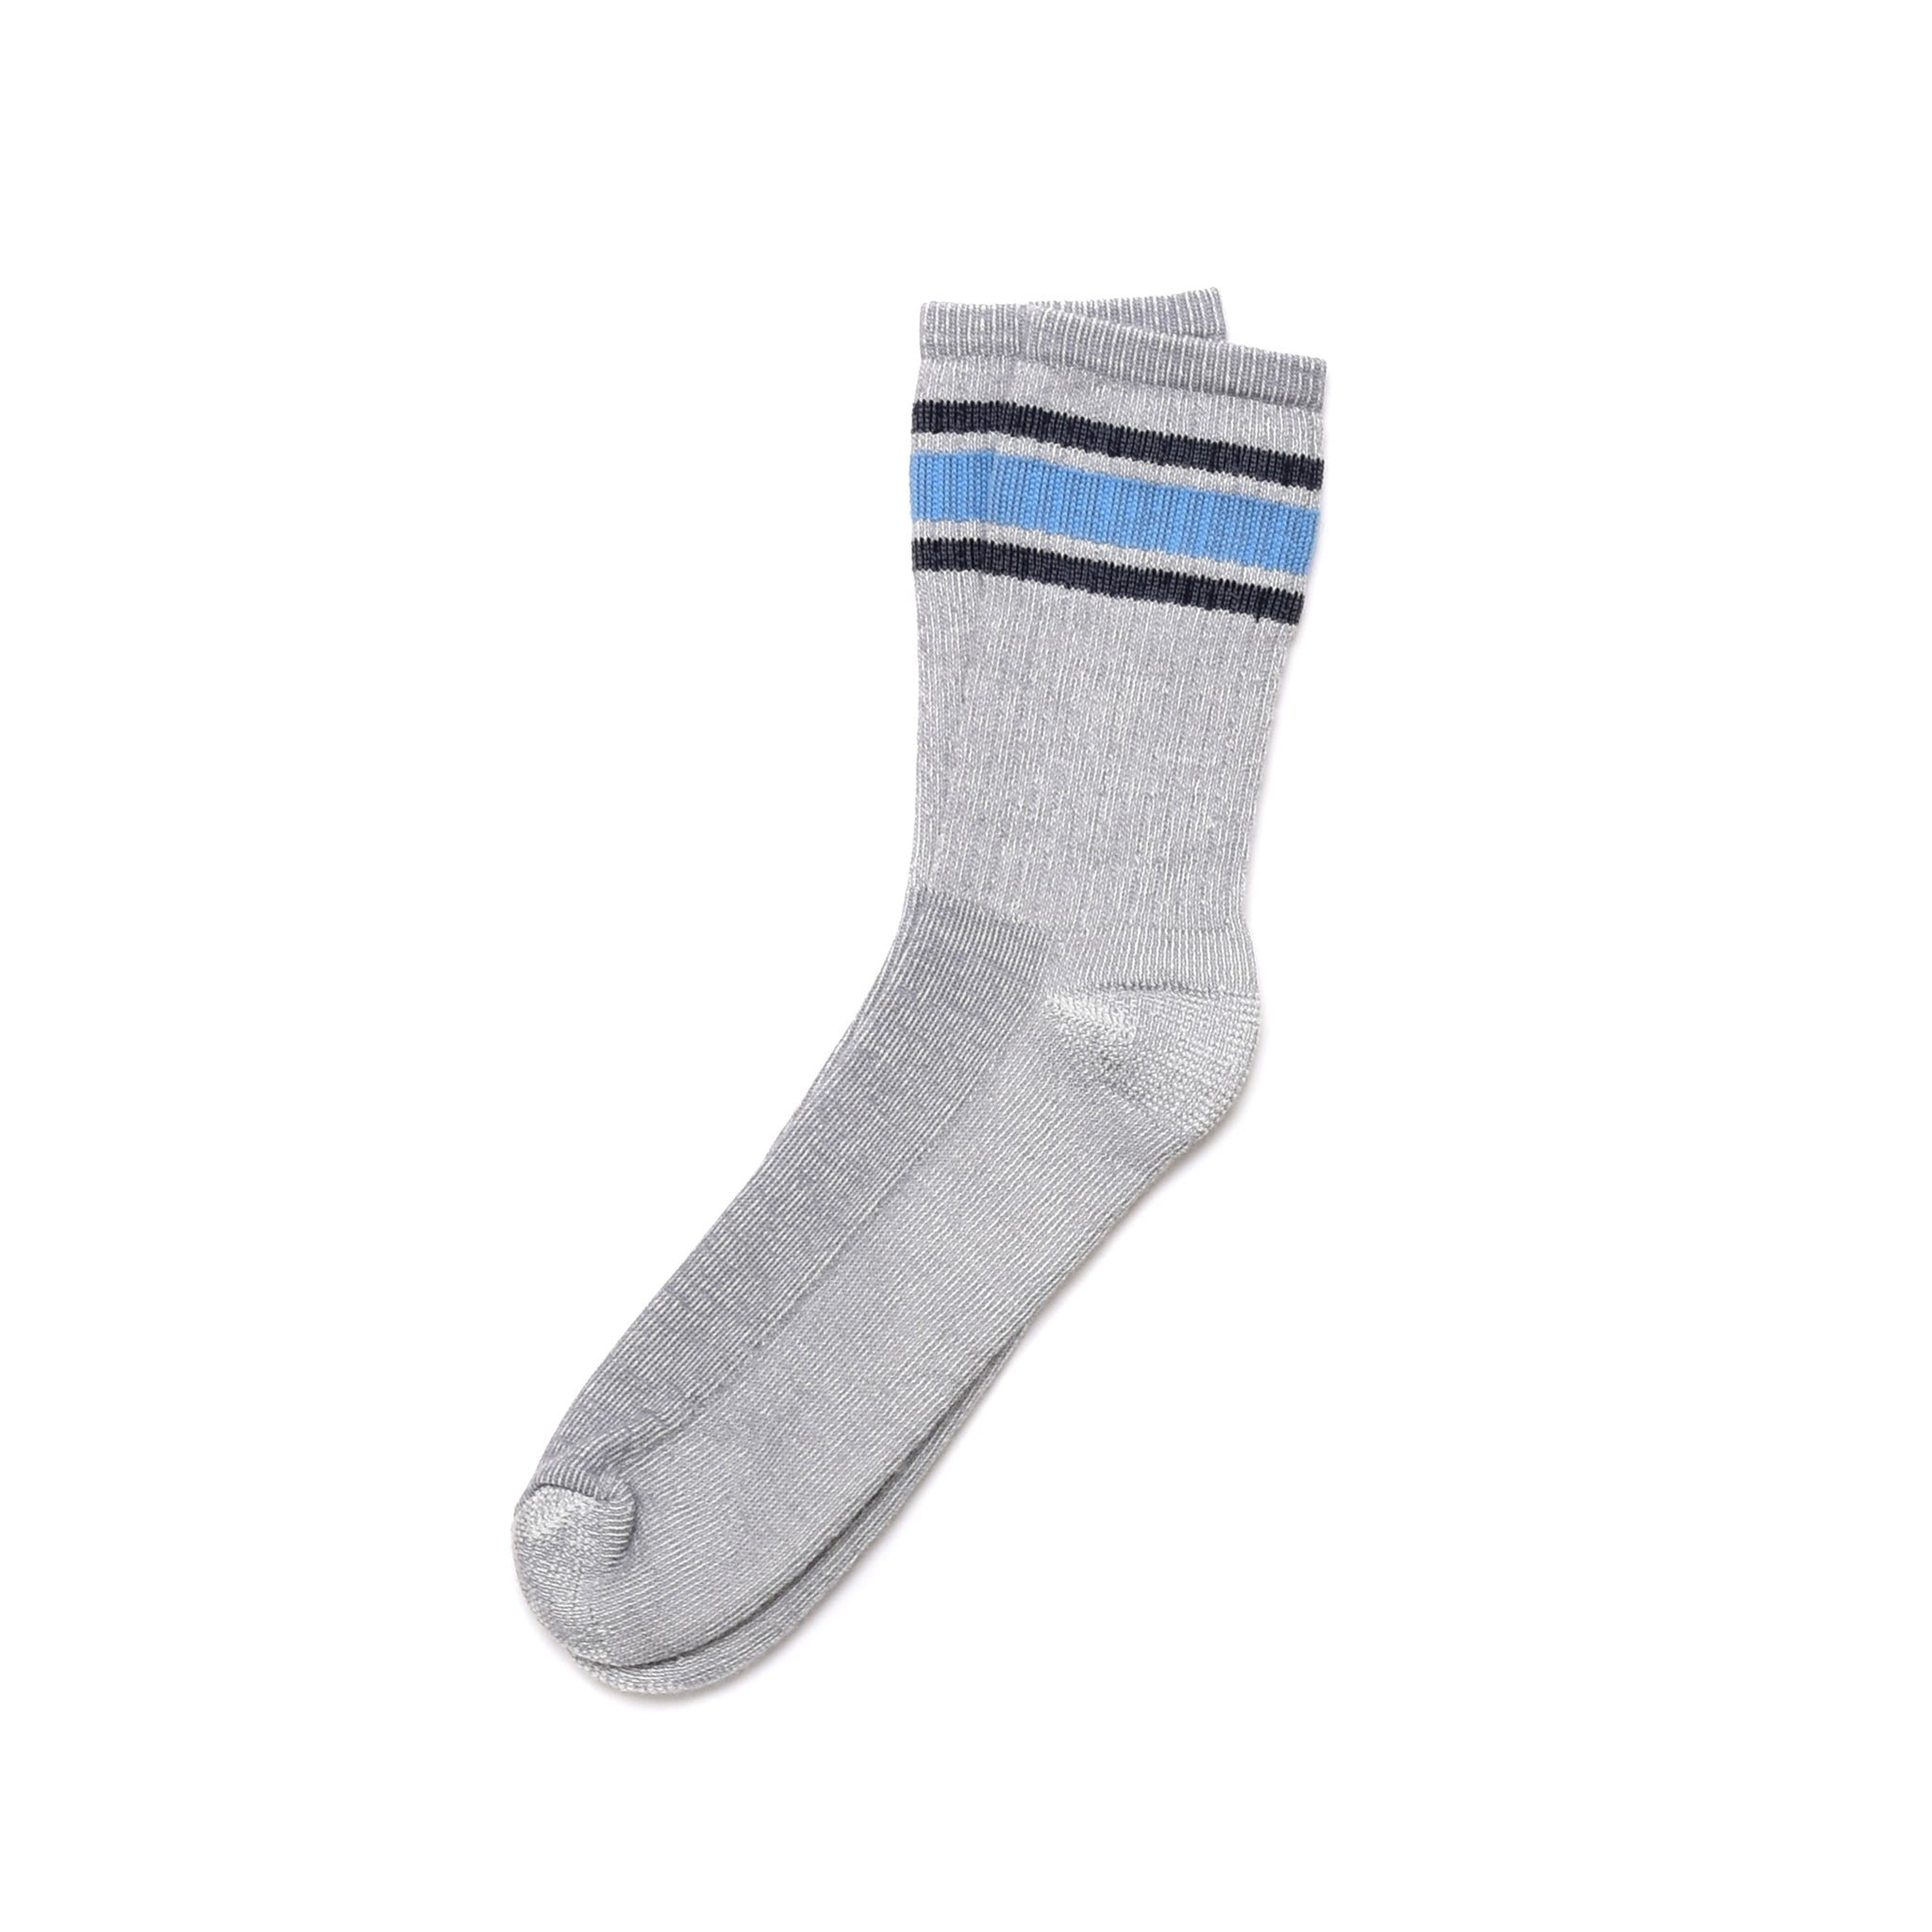 American Trench Merino Activity Sock - Silver Body With Black / Lt Blue